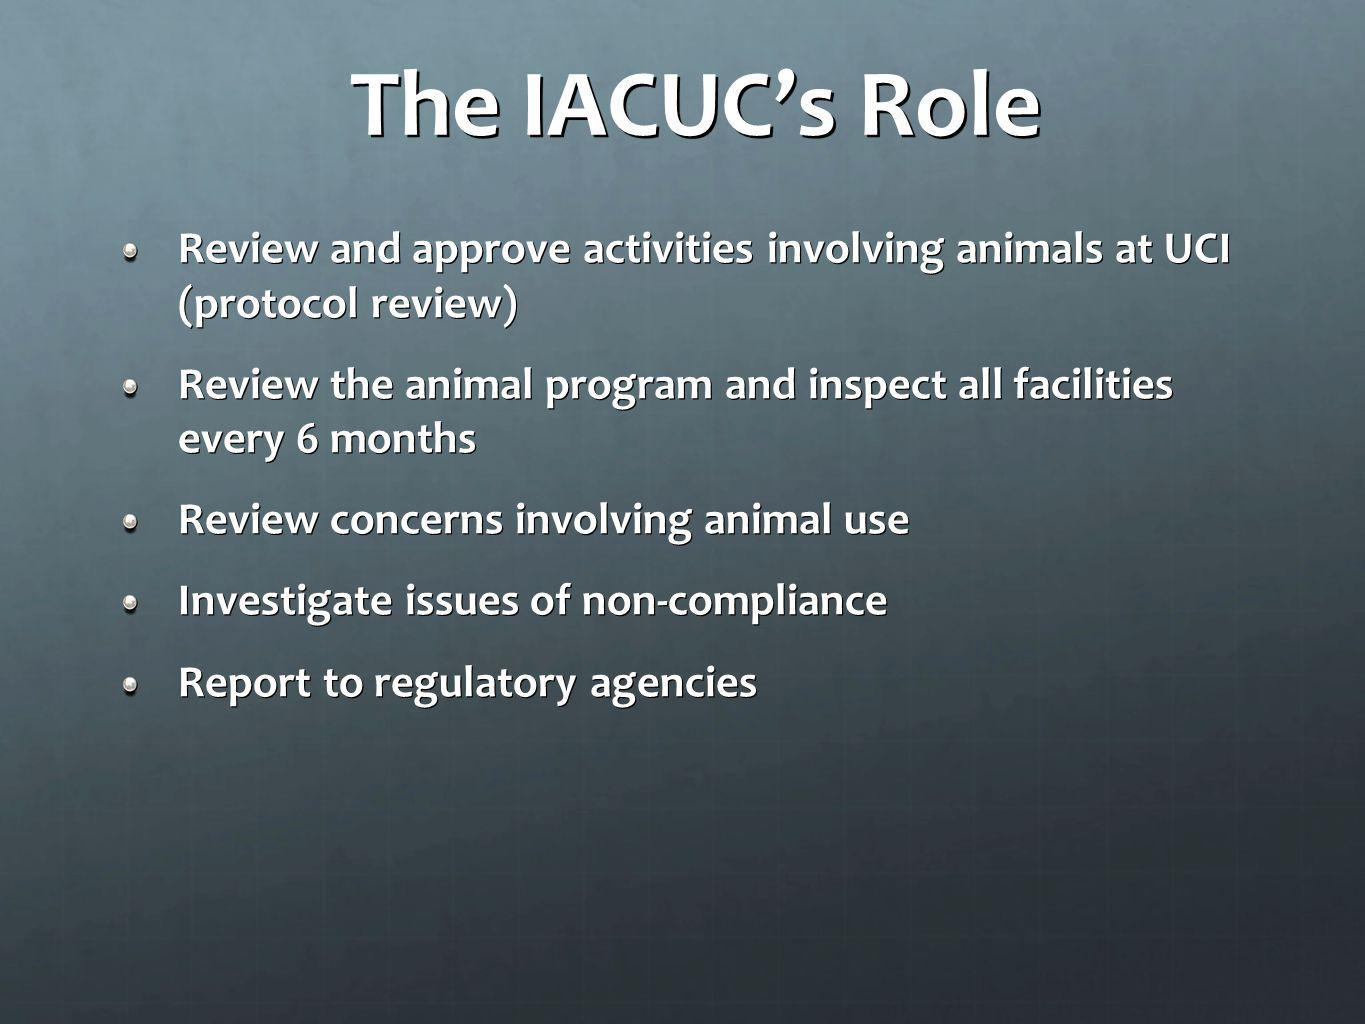 The IACUC's Role Review and approve activities involving animals at UCI (protocol review)